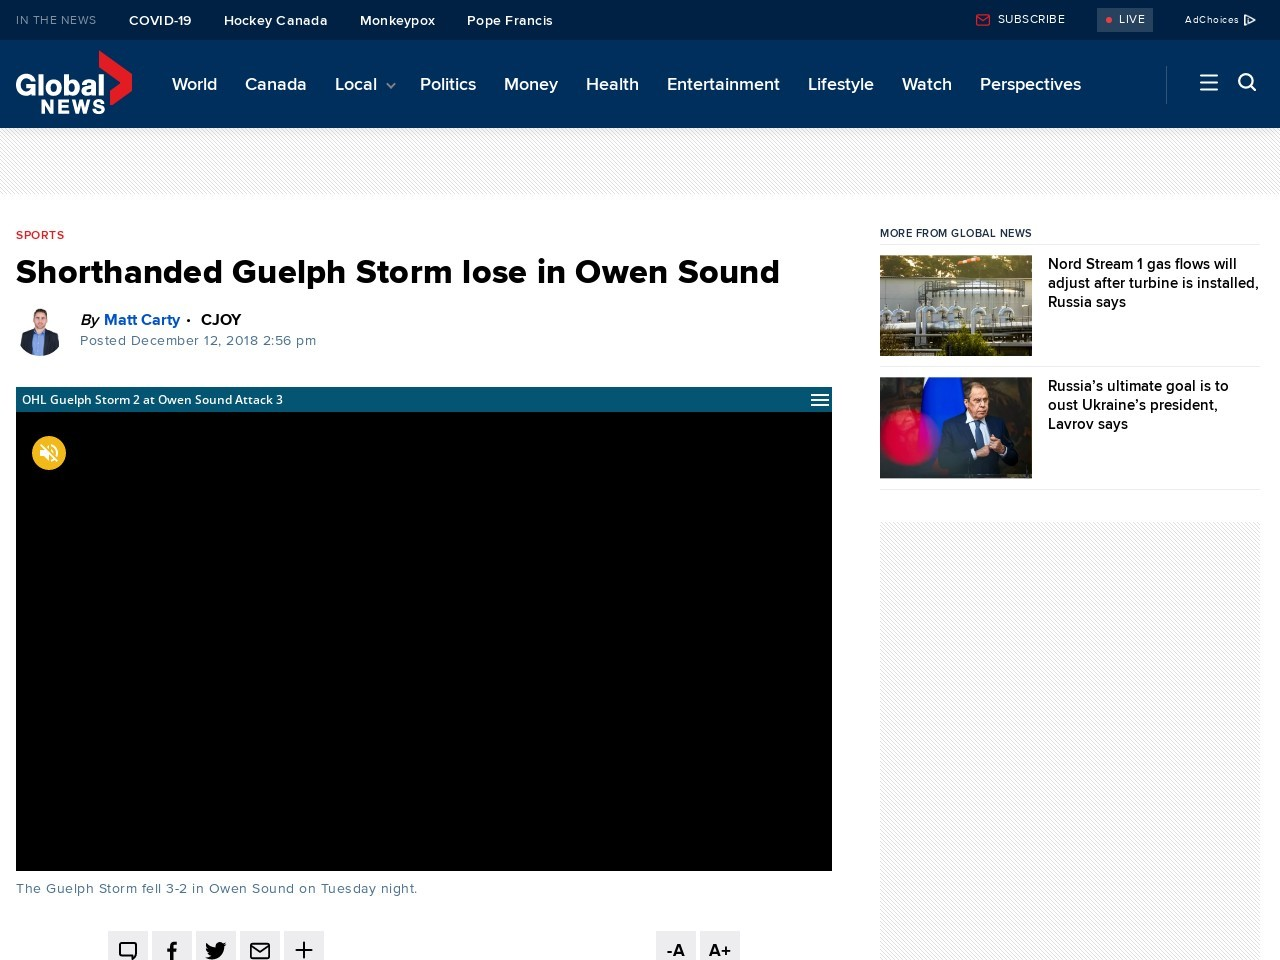 Shorthanded Guelph Storm lose in Owen Sound